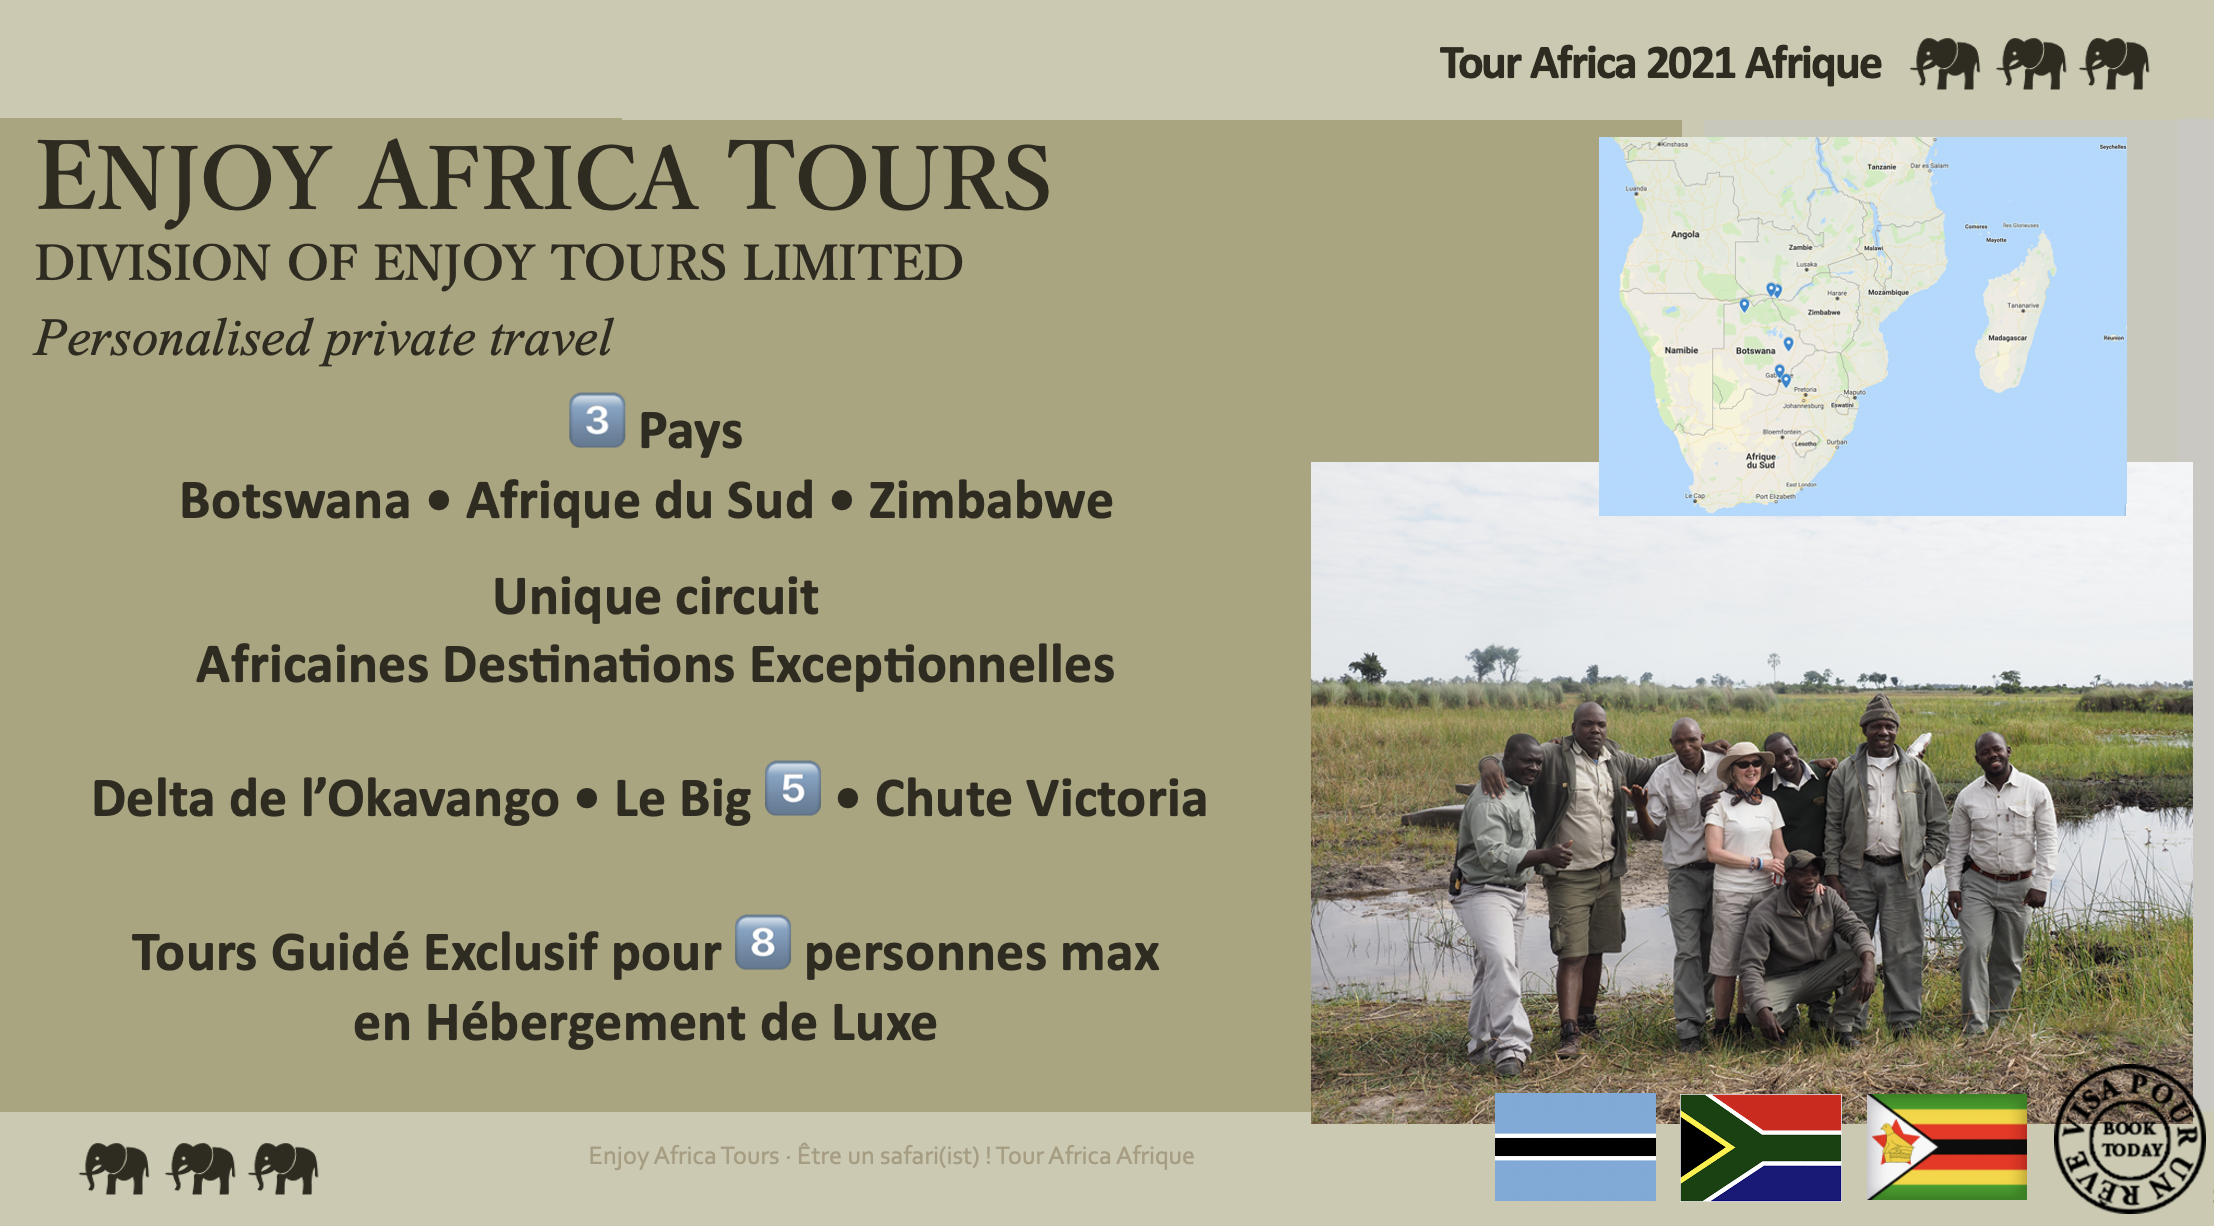 Enjoy Africa Tours 2021 Website Pg 1 French